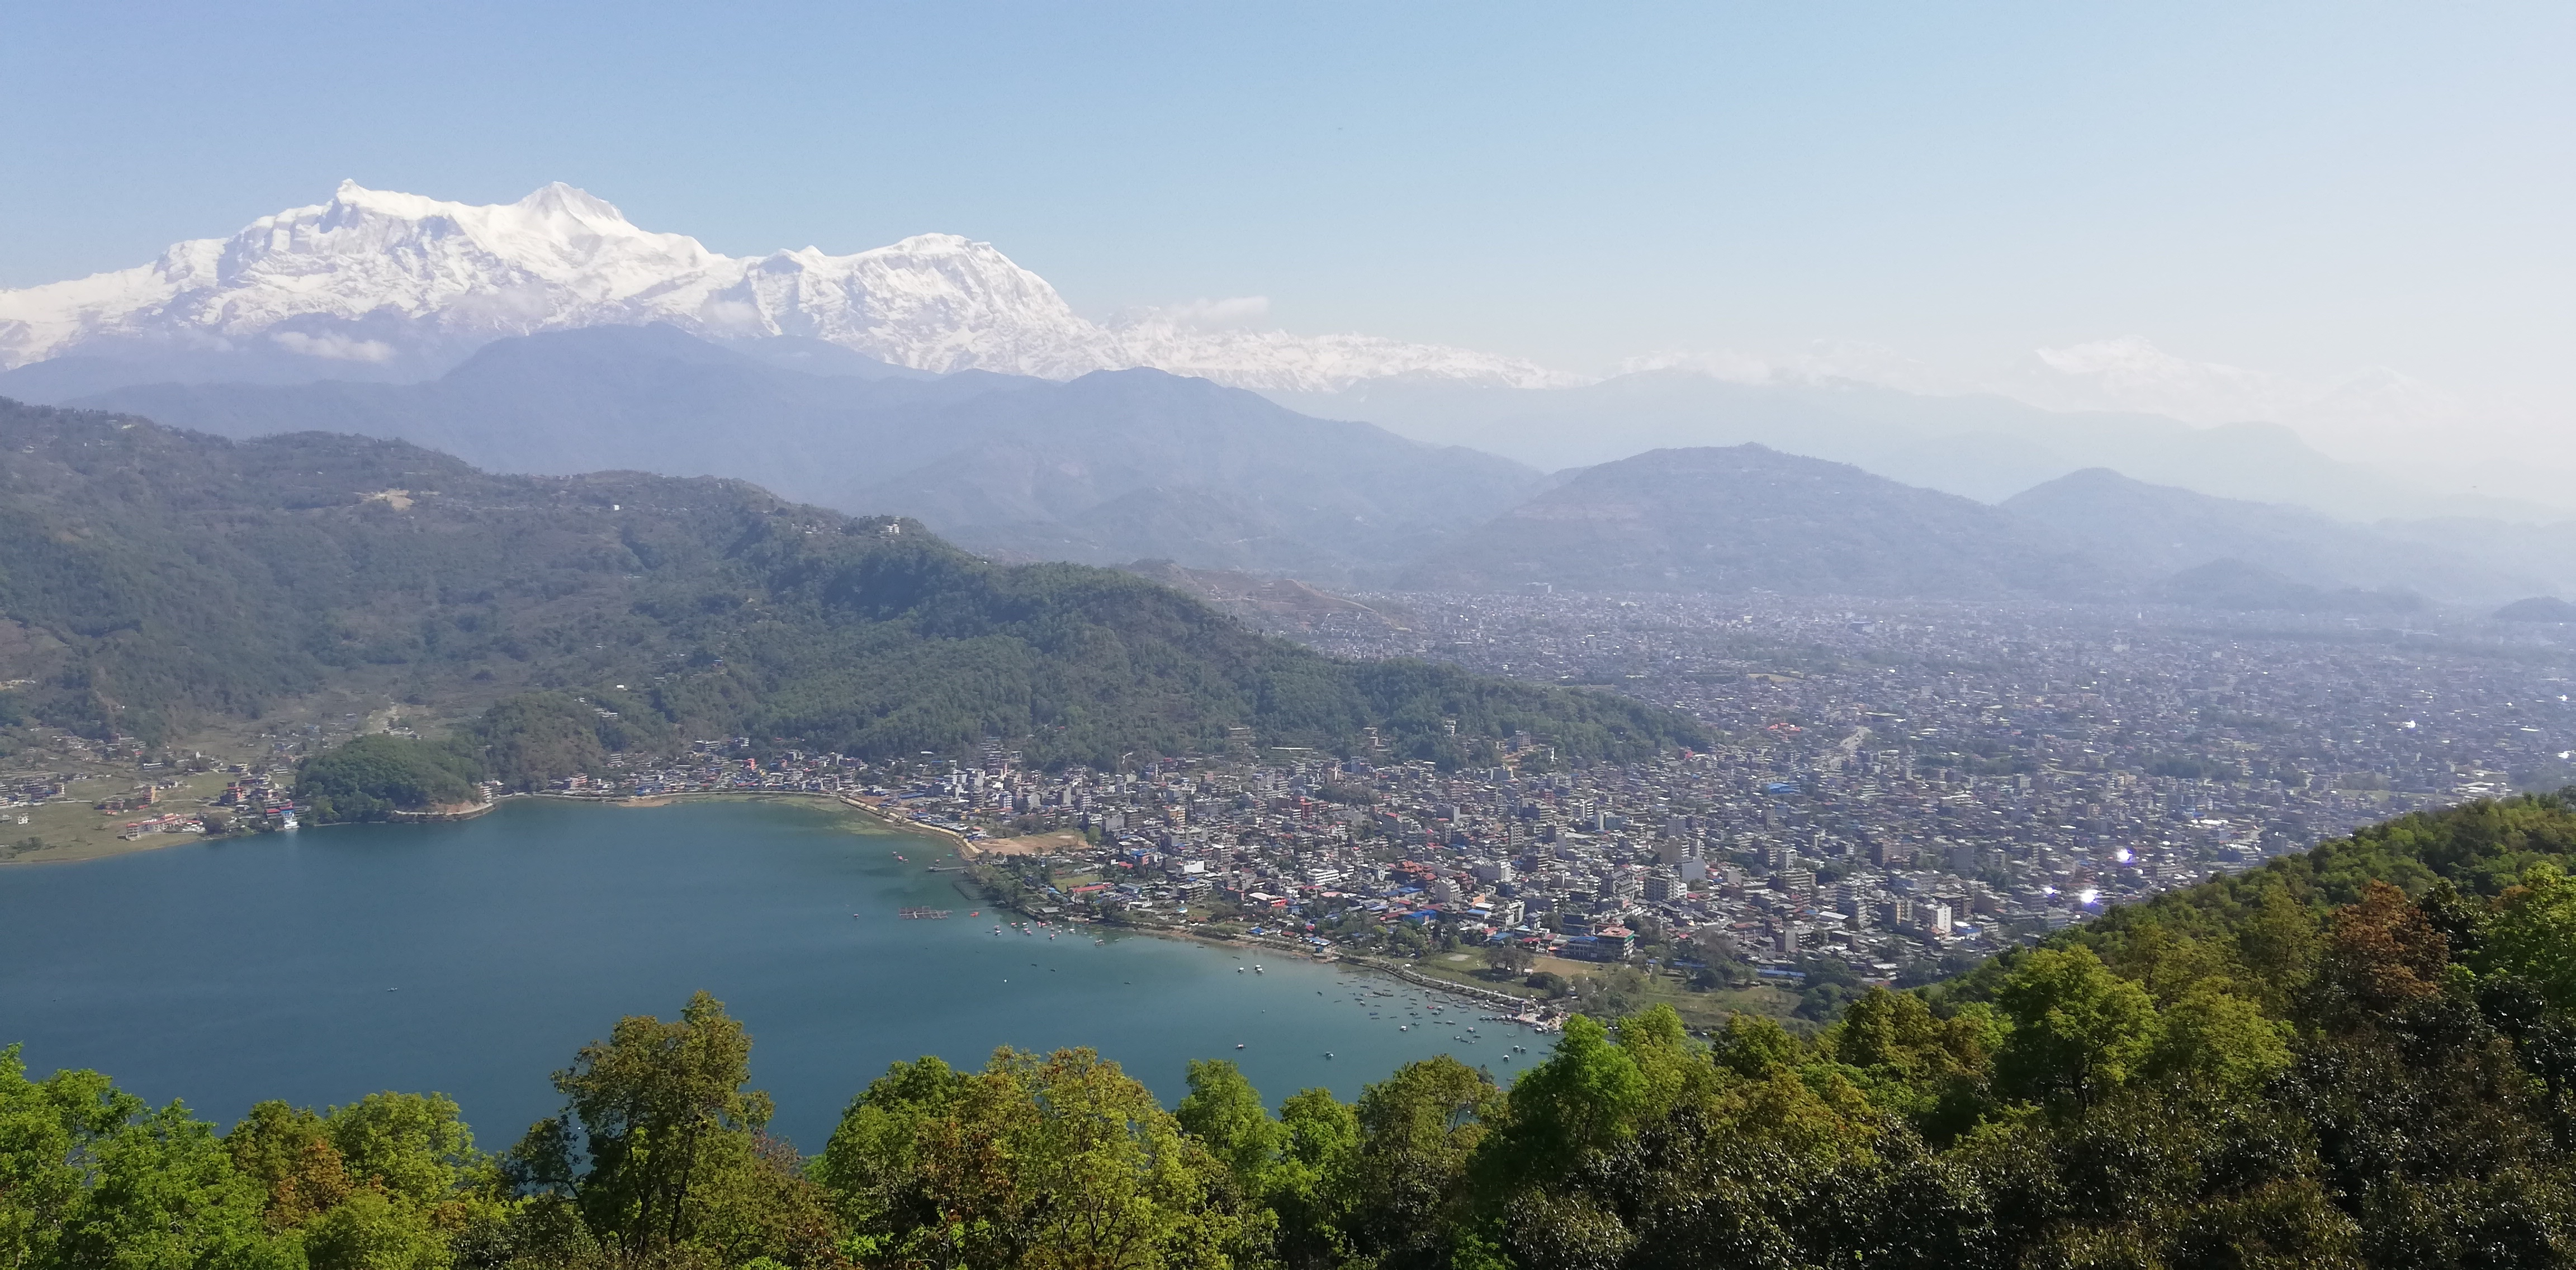 View of Pokhara and the Annapurna's, Day 1 of Panchase trek